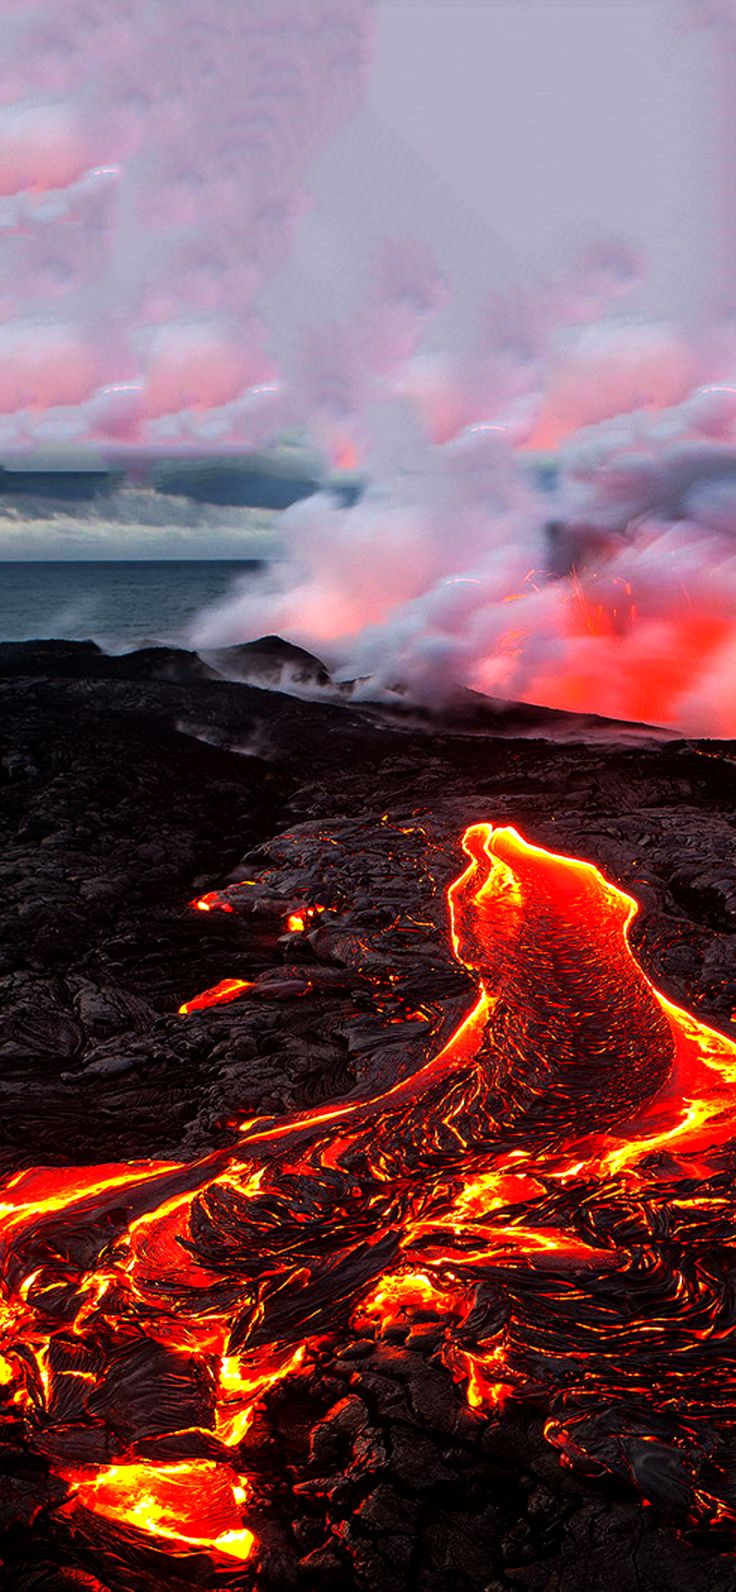 Best volcano wallpaper for iPhone x iOSwall Volcano